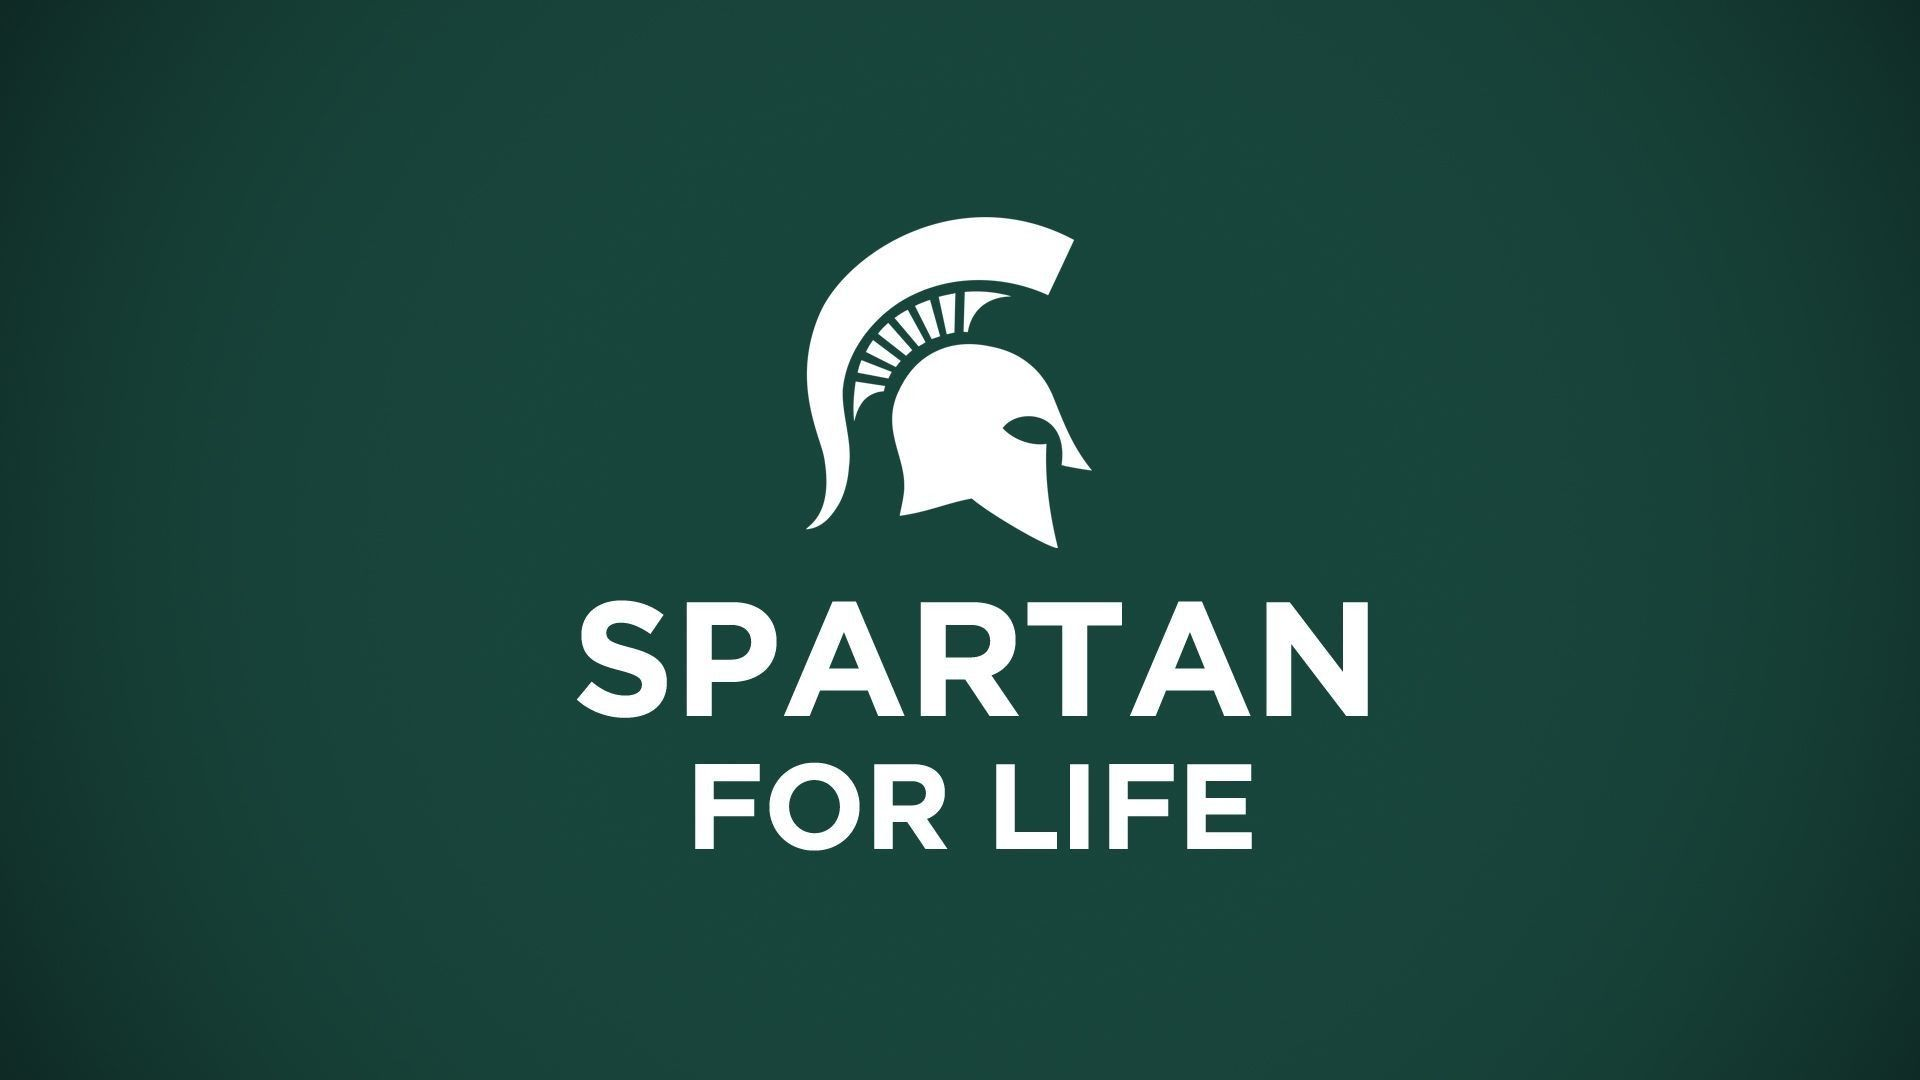 American Spartan Wallpapers Top Free American Spartan